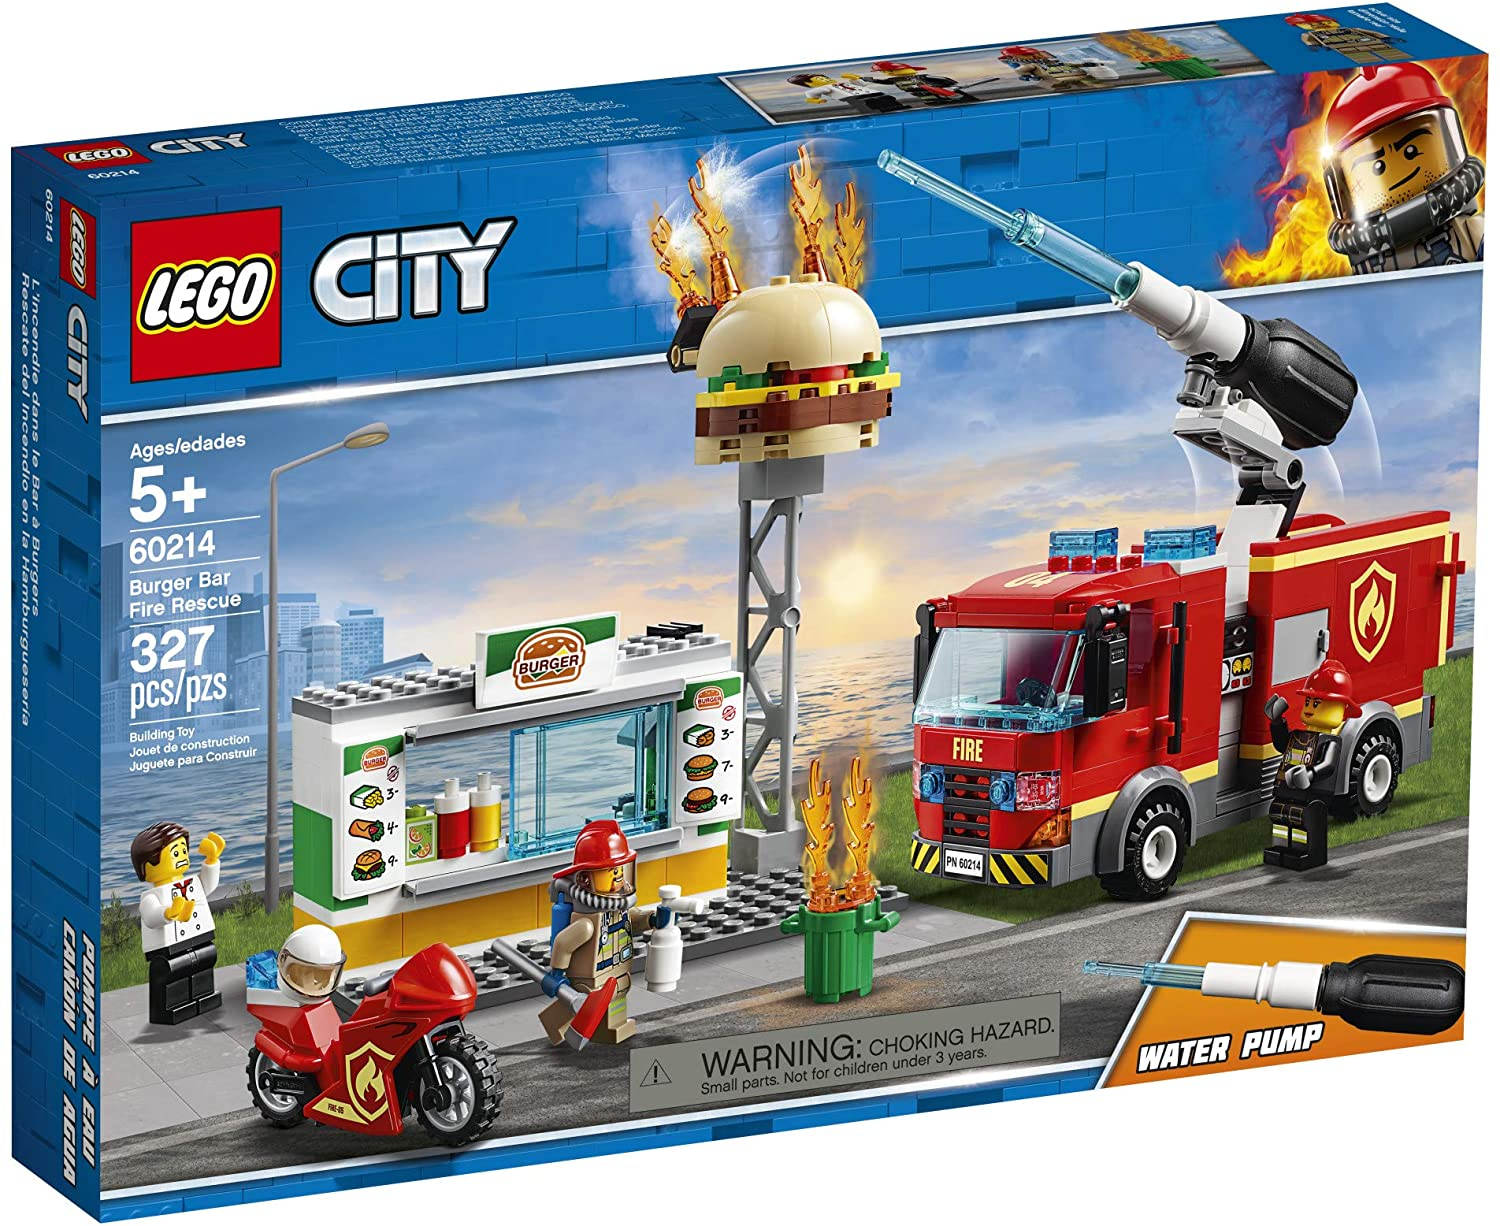 LEGO City Burger Bar Fire Rescue 60214 Building Kit (327 Pieces